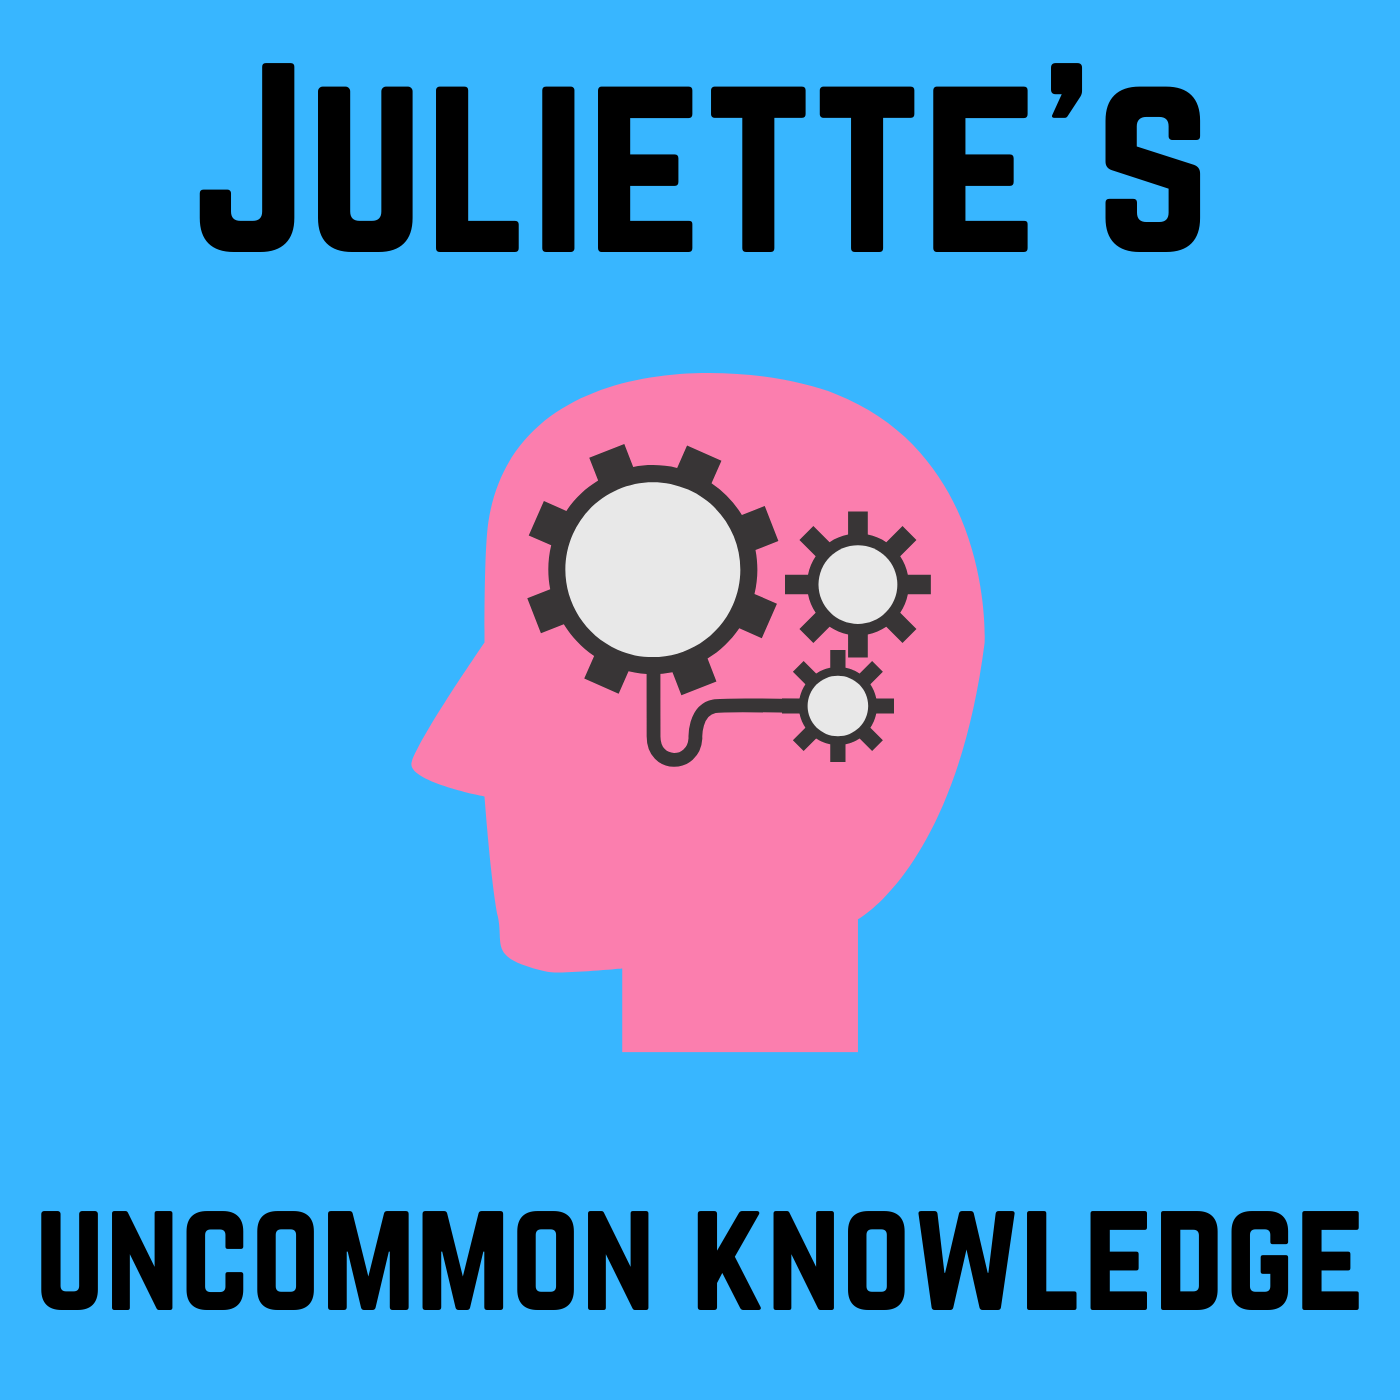 Juliettes Uncommon Knowledge